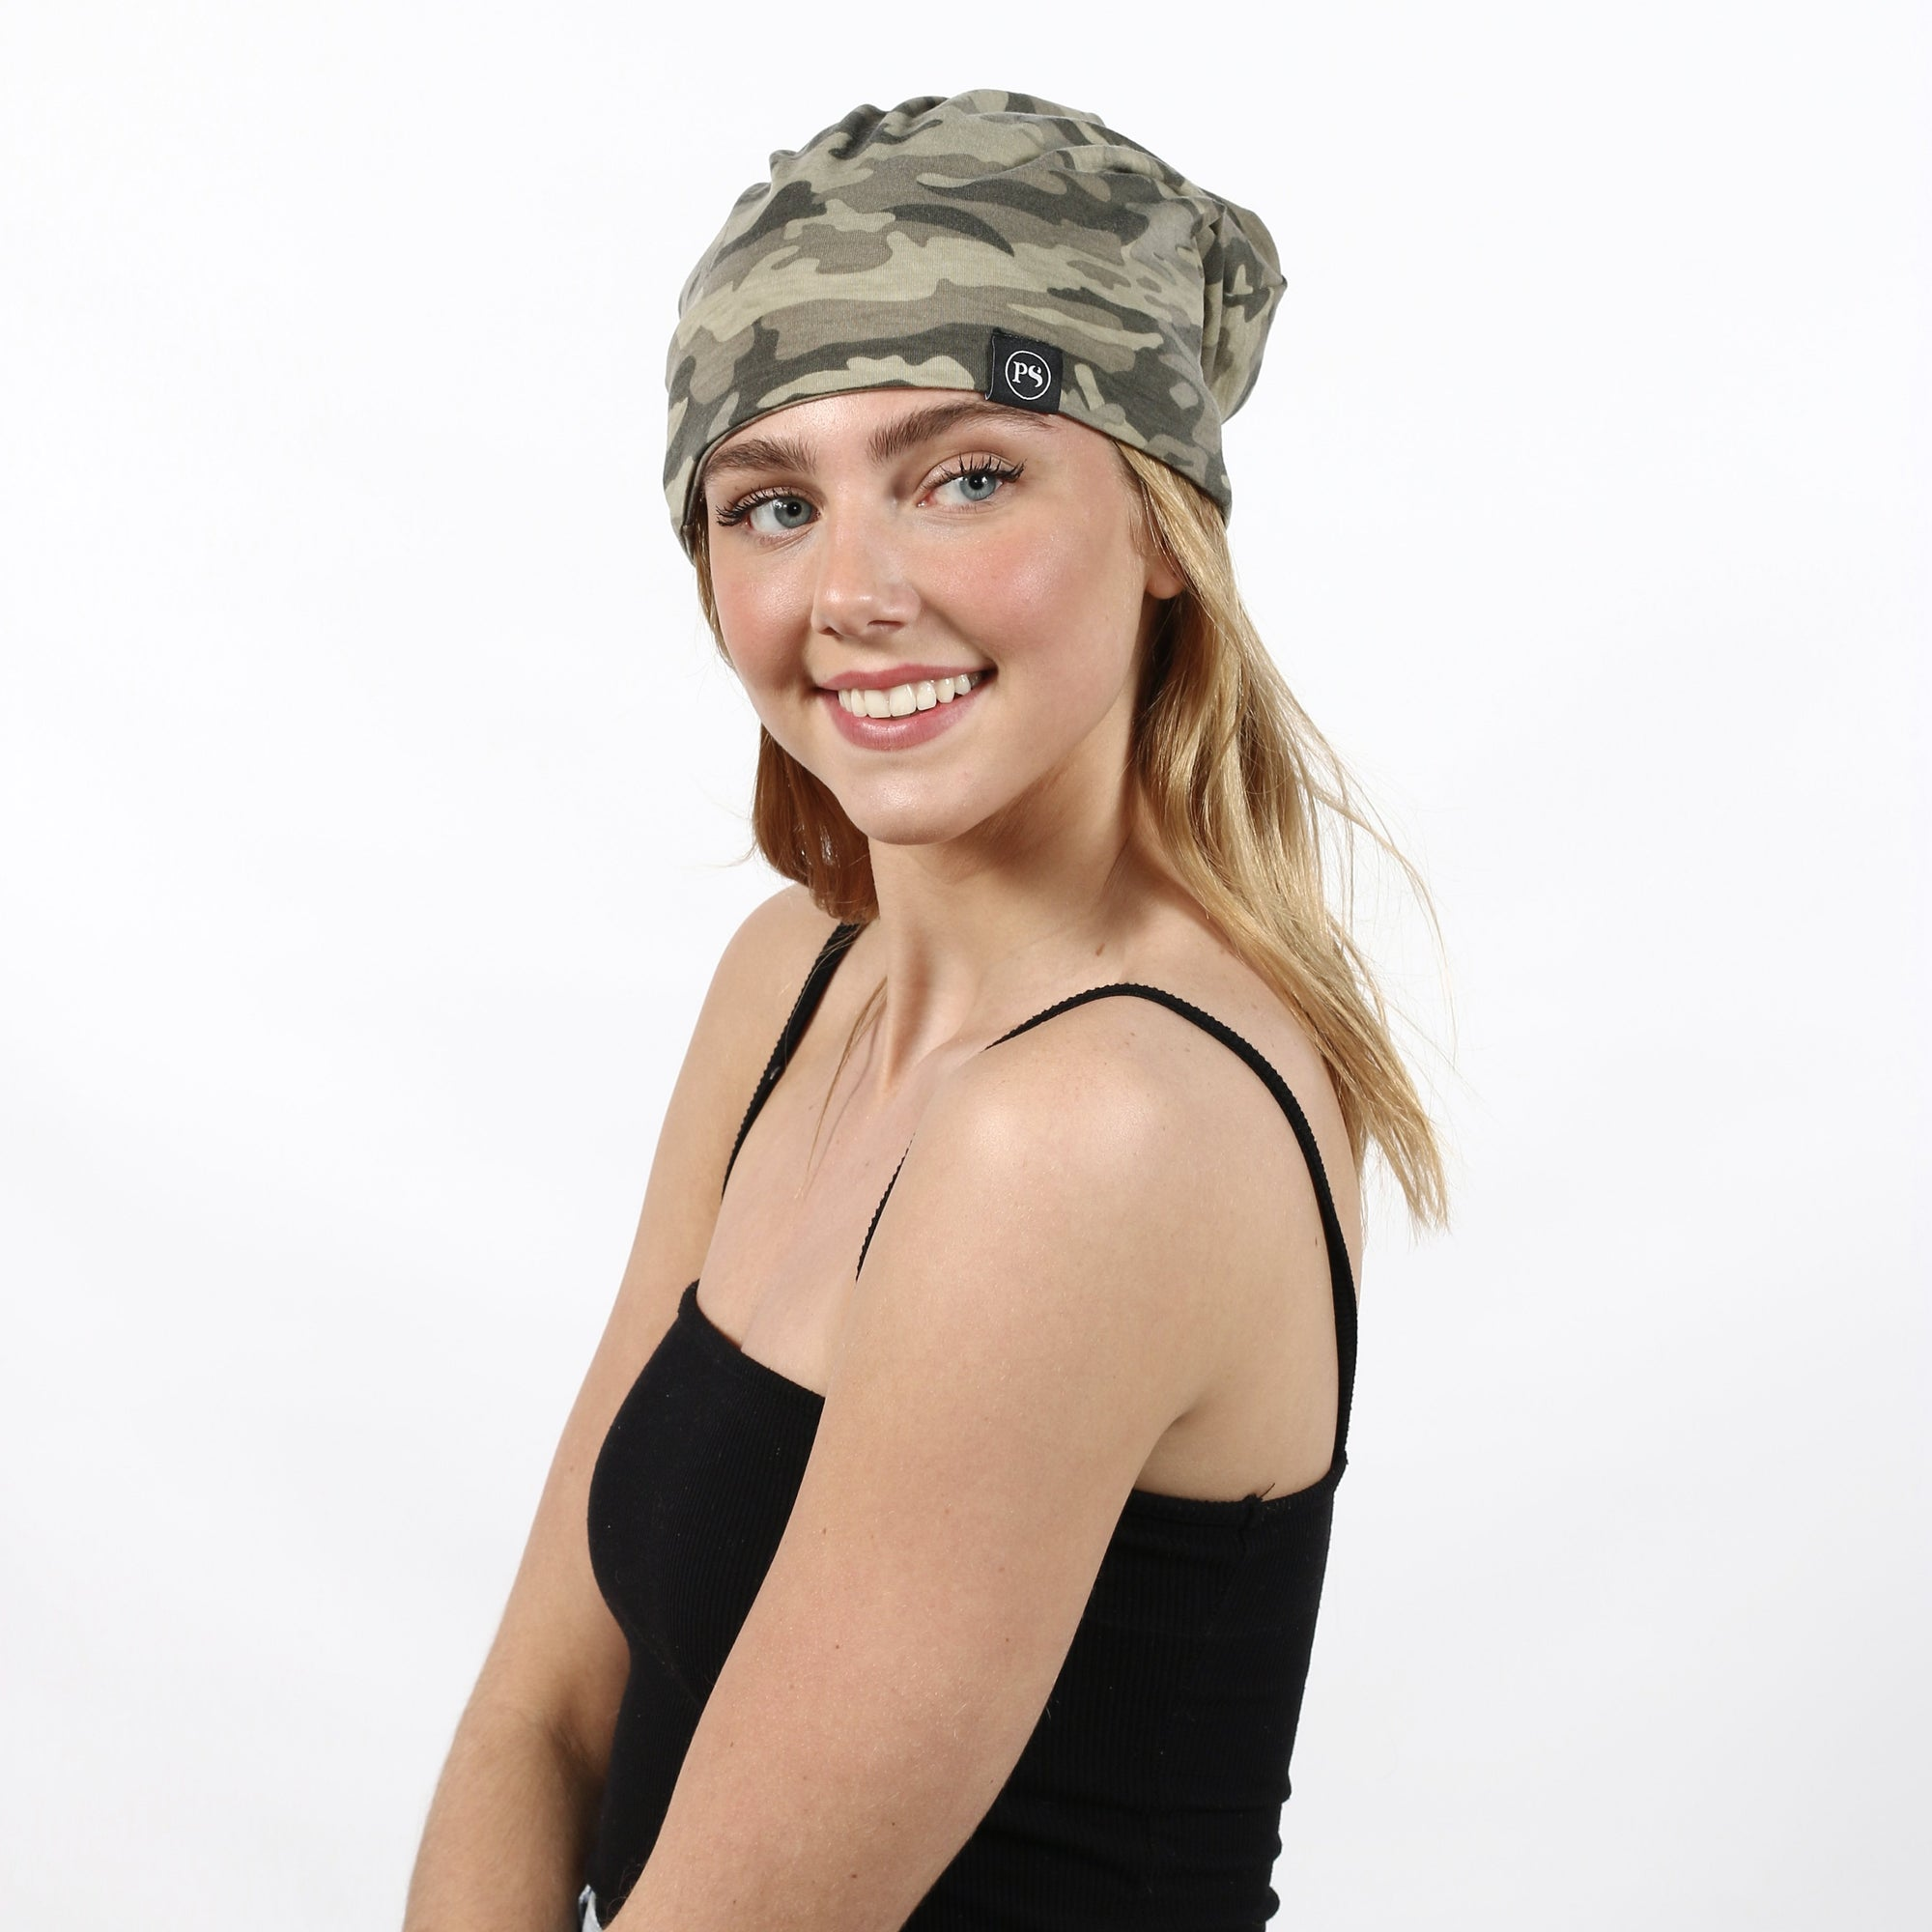 Faded Camo Peek-a-Boo Beanie-[option4]-[option5]-[option6]-[option7]-[option8]-Womens-Clothing-Shop